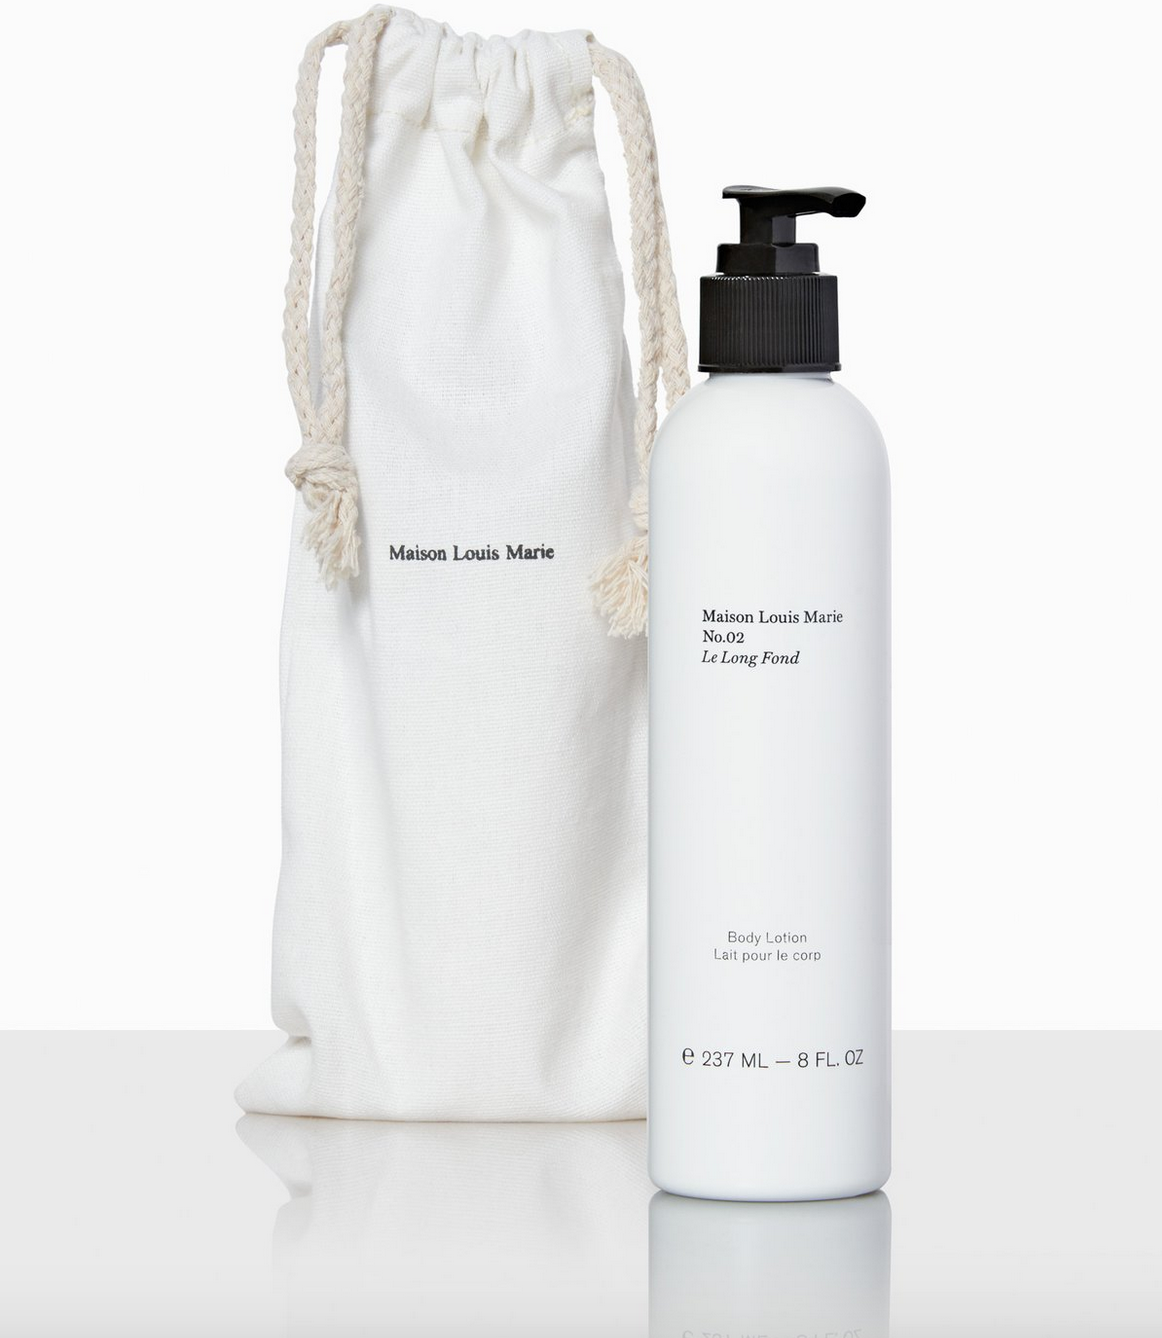 No.02 Le Long Fond - Hand and Body Lotion